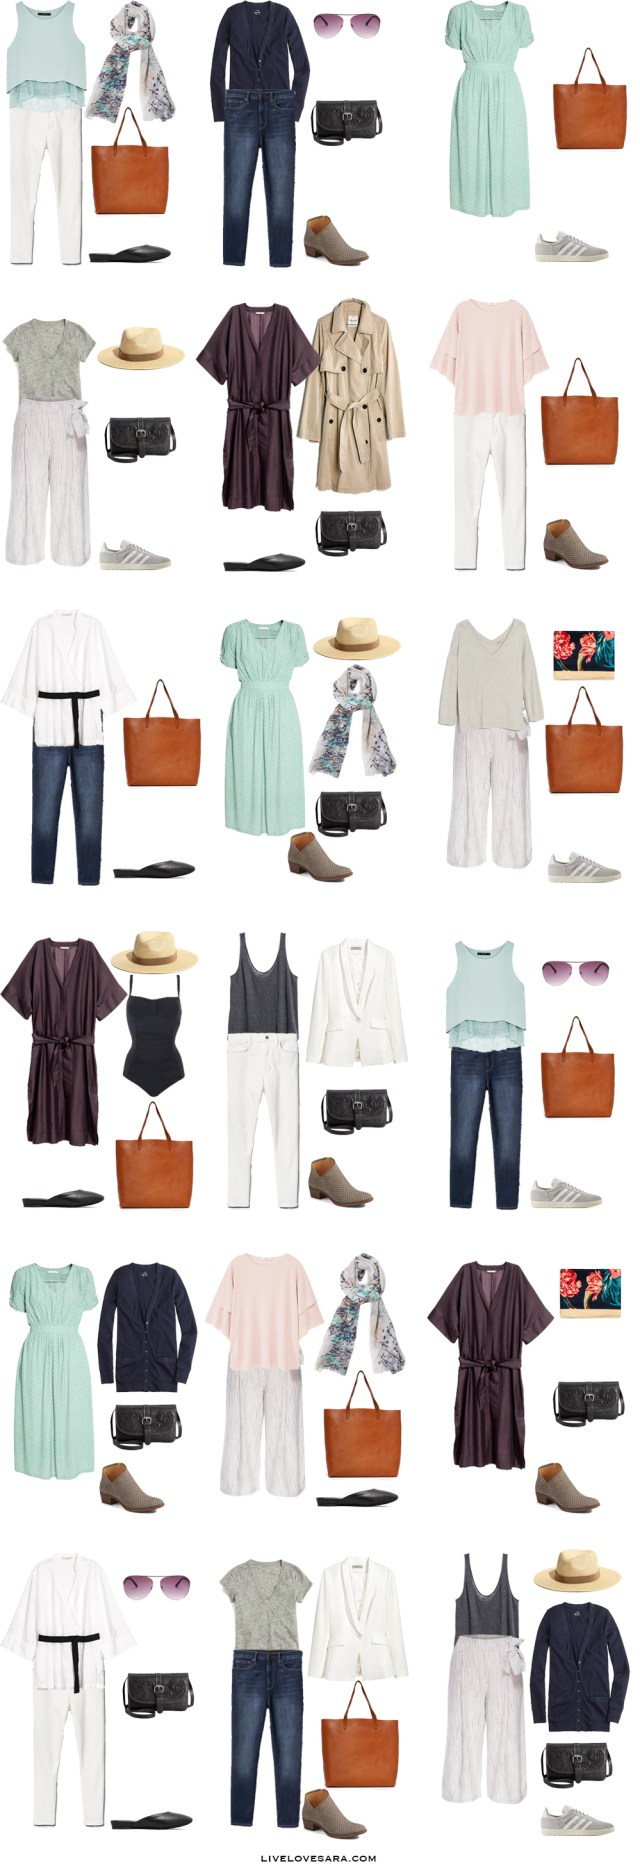 What to Pack for Italy and Paris Packing Light List Outfit Options #packinglist #packinglight #travellight #travel #livelovesara